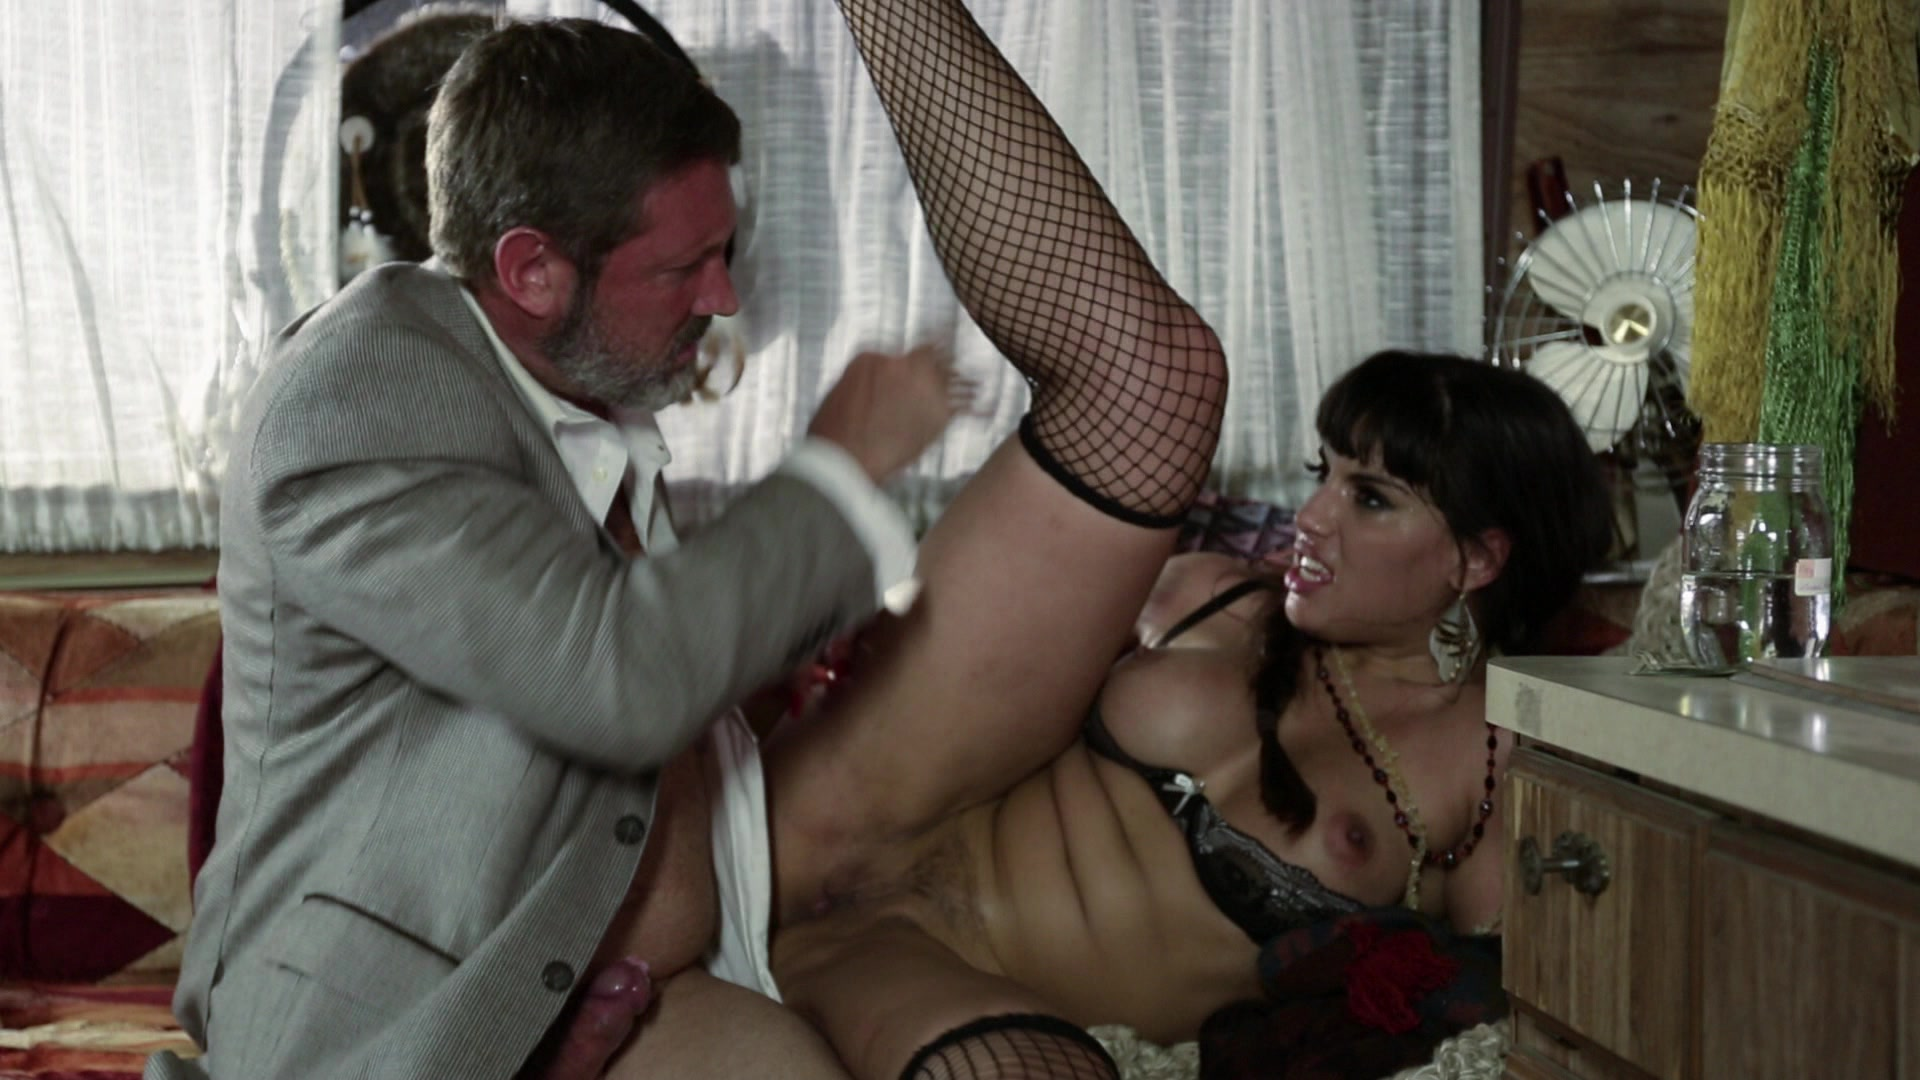 Scene with Brad Armstrong and Mercedes Carrera - image 19 out of 20